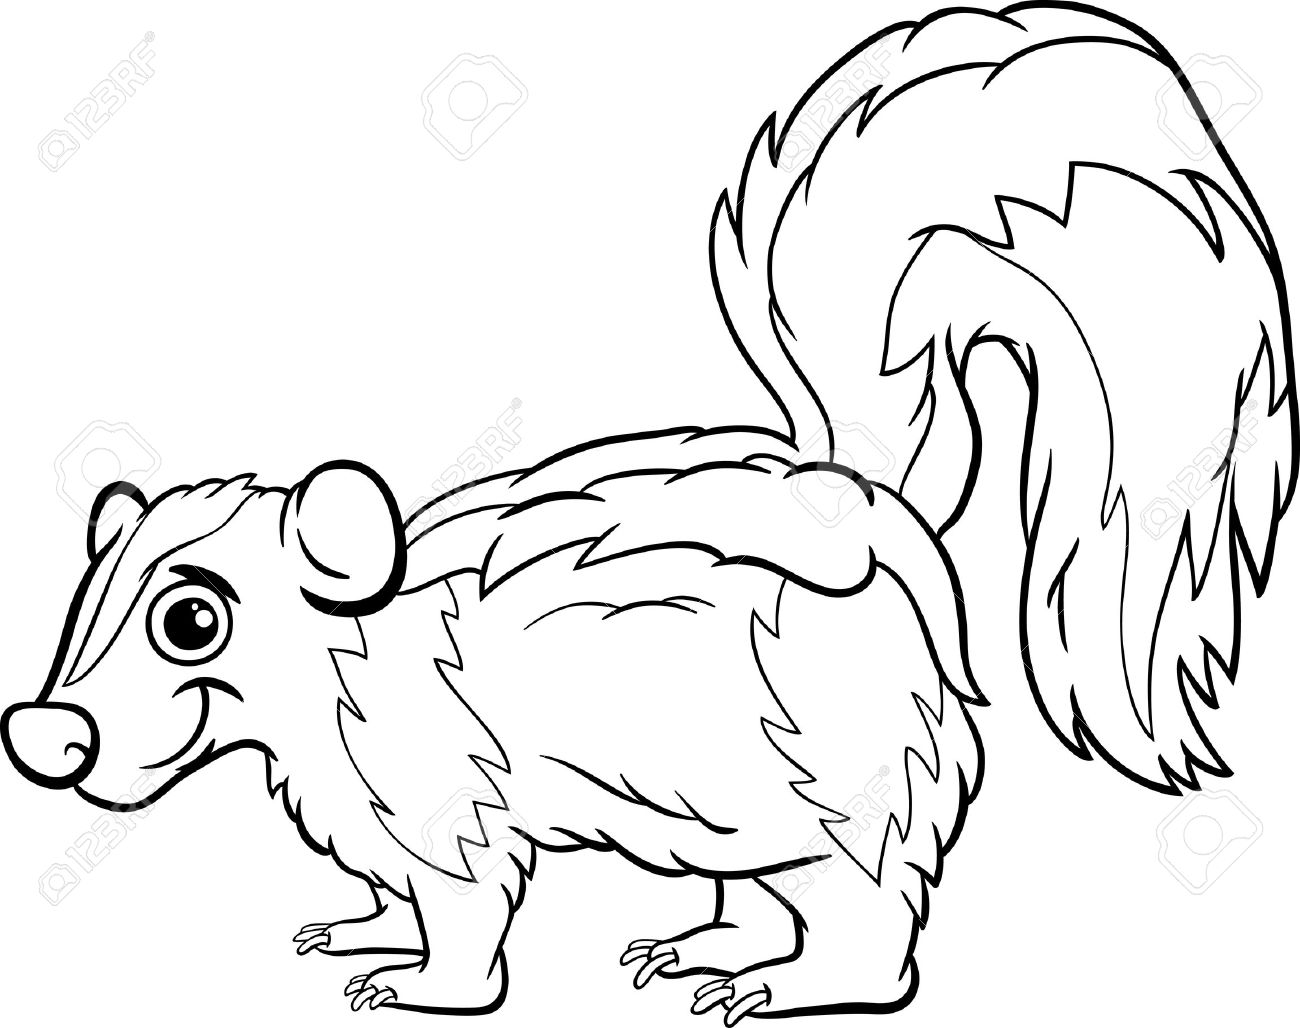 500 Skunk free clipart.